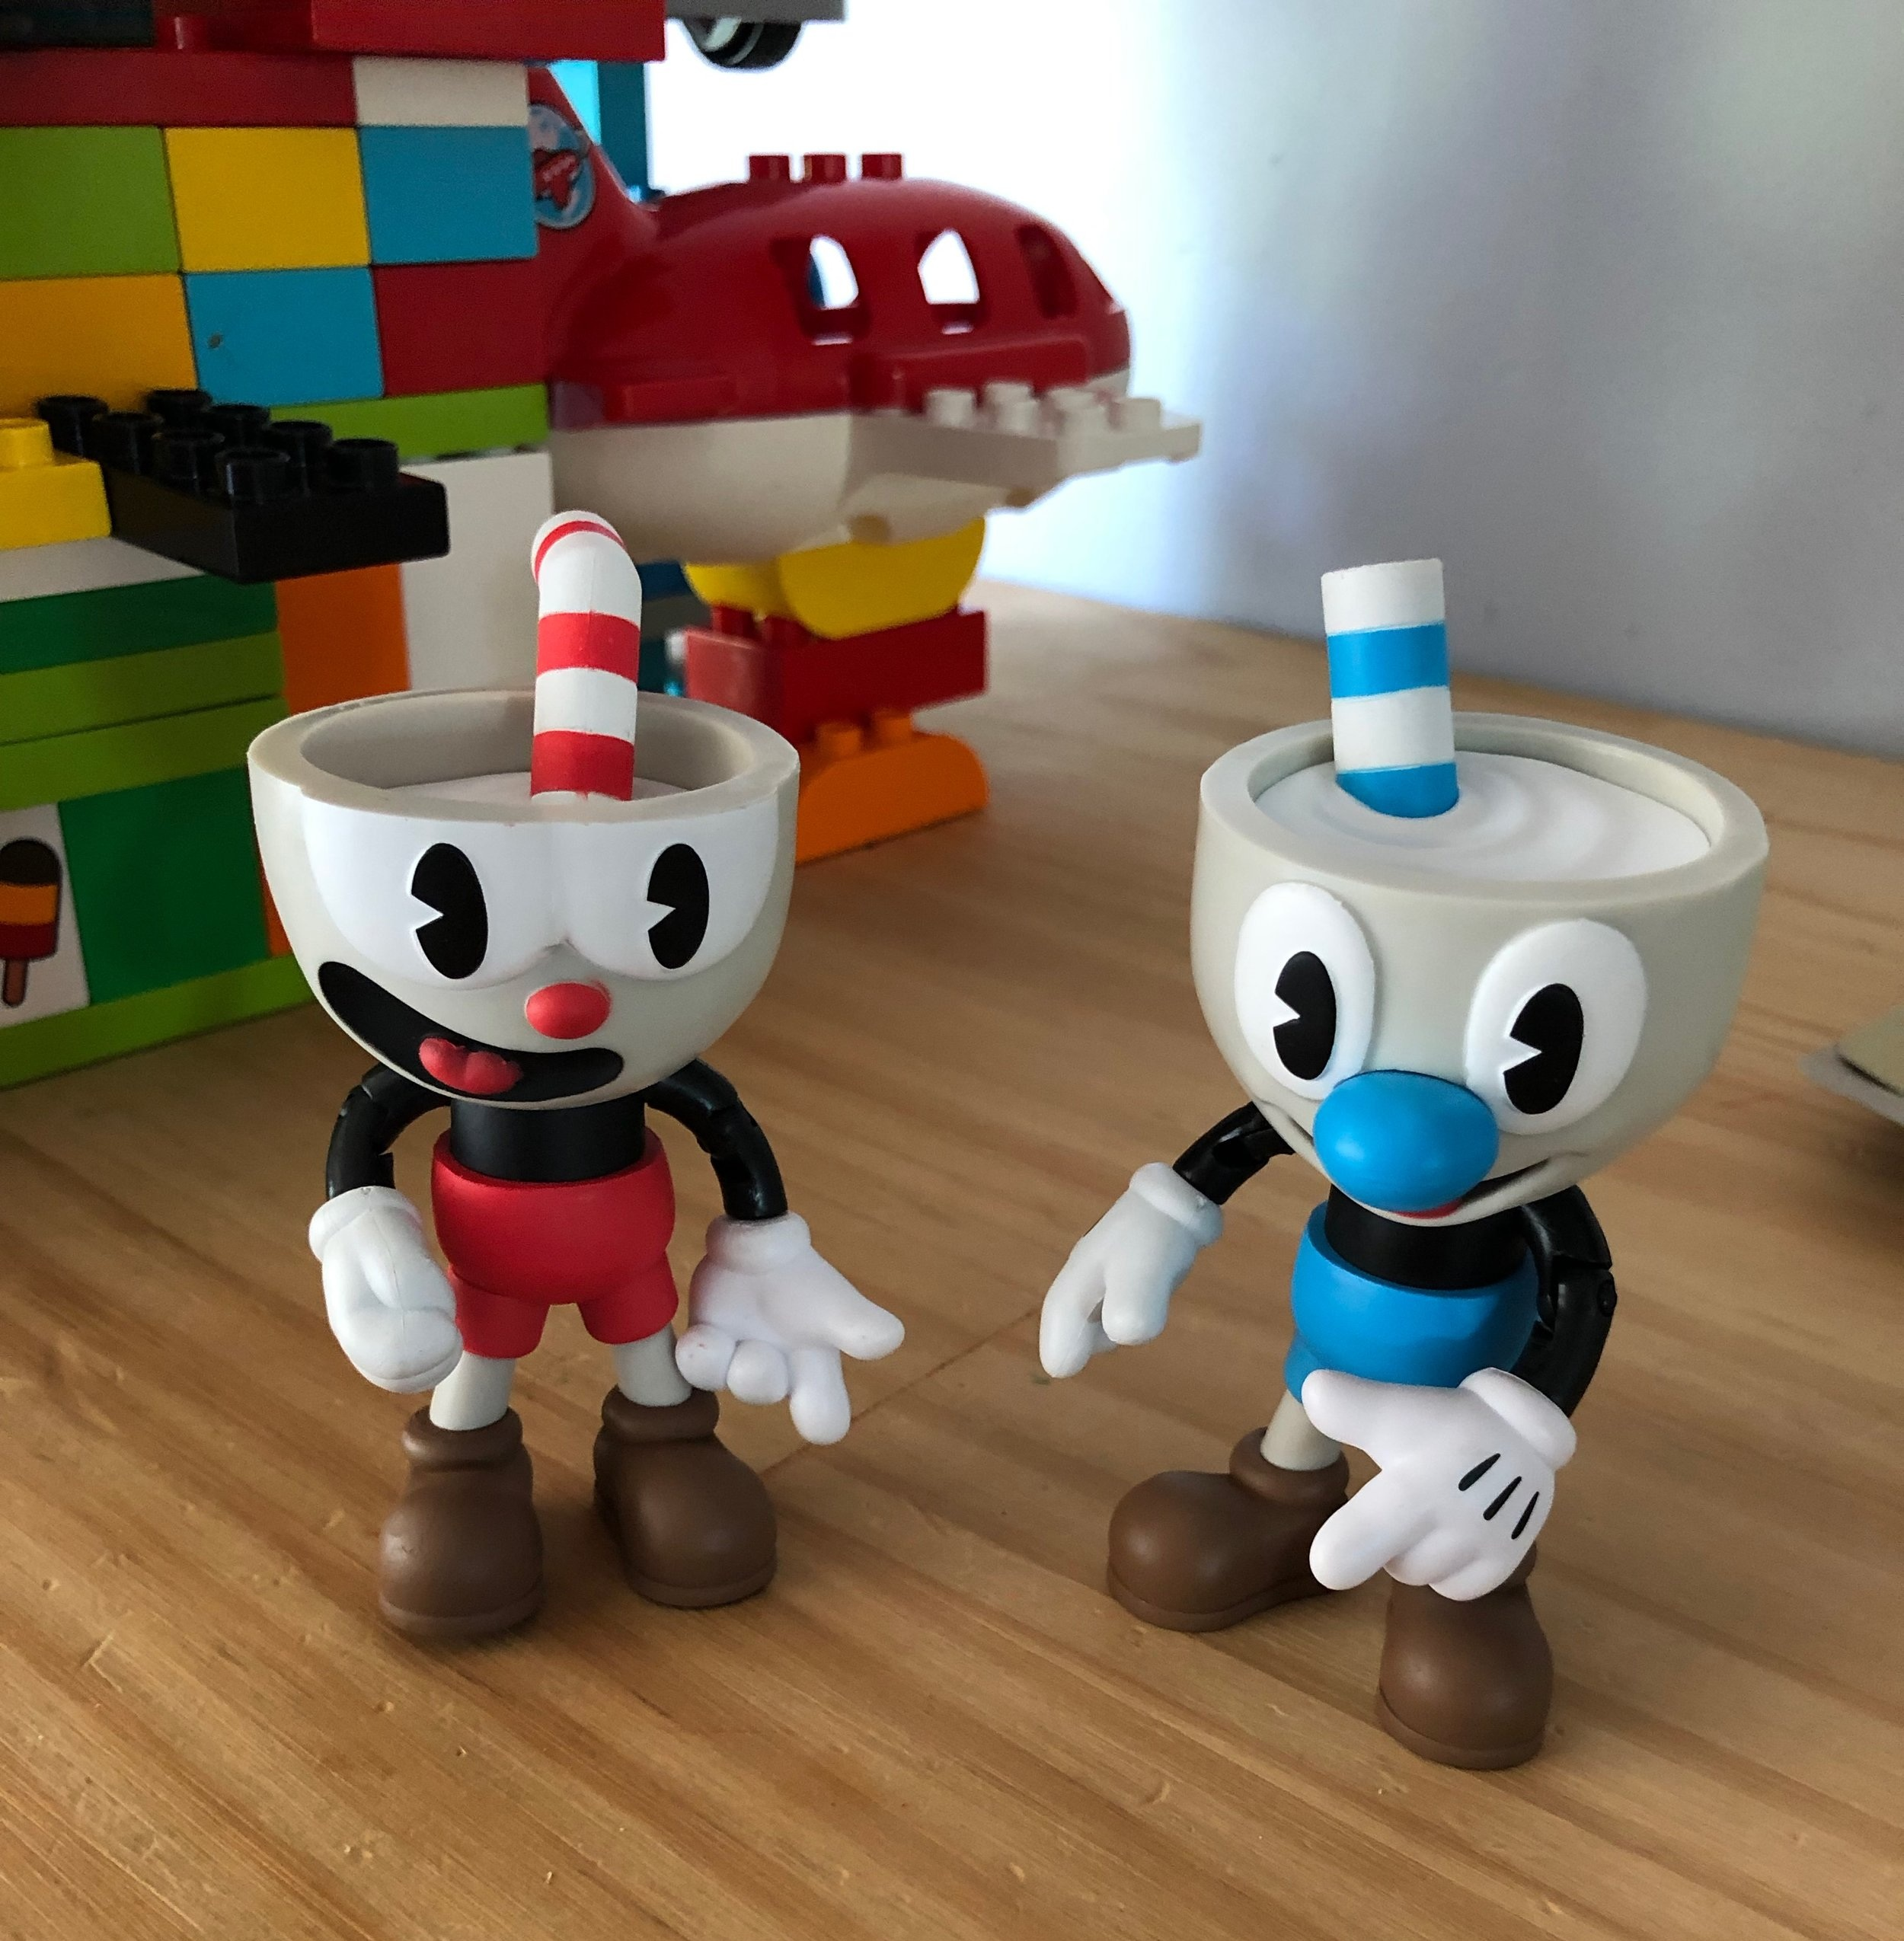 This is Cuphead and Mugman. So now you know.